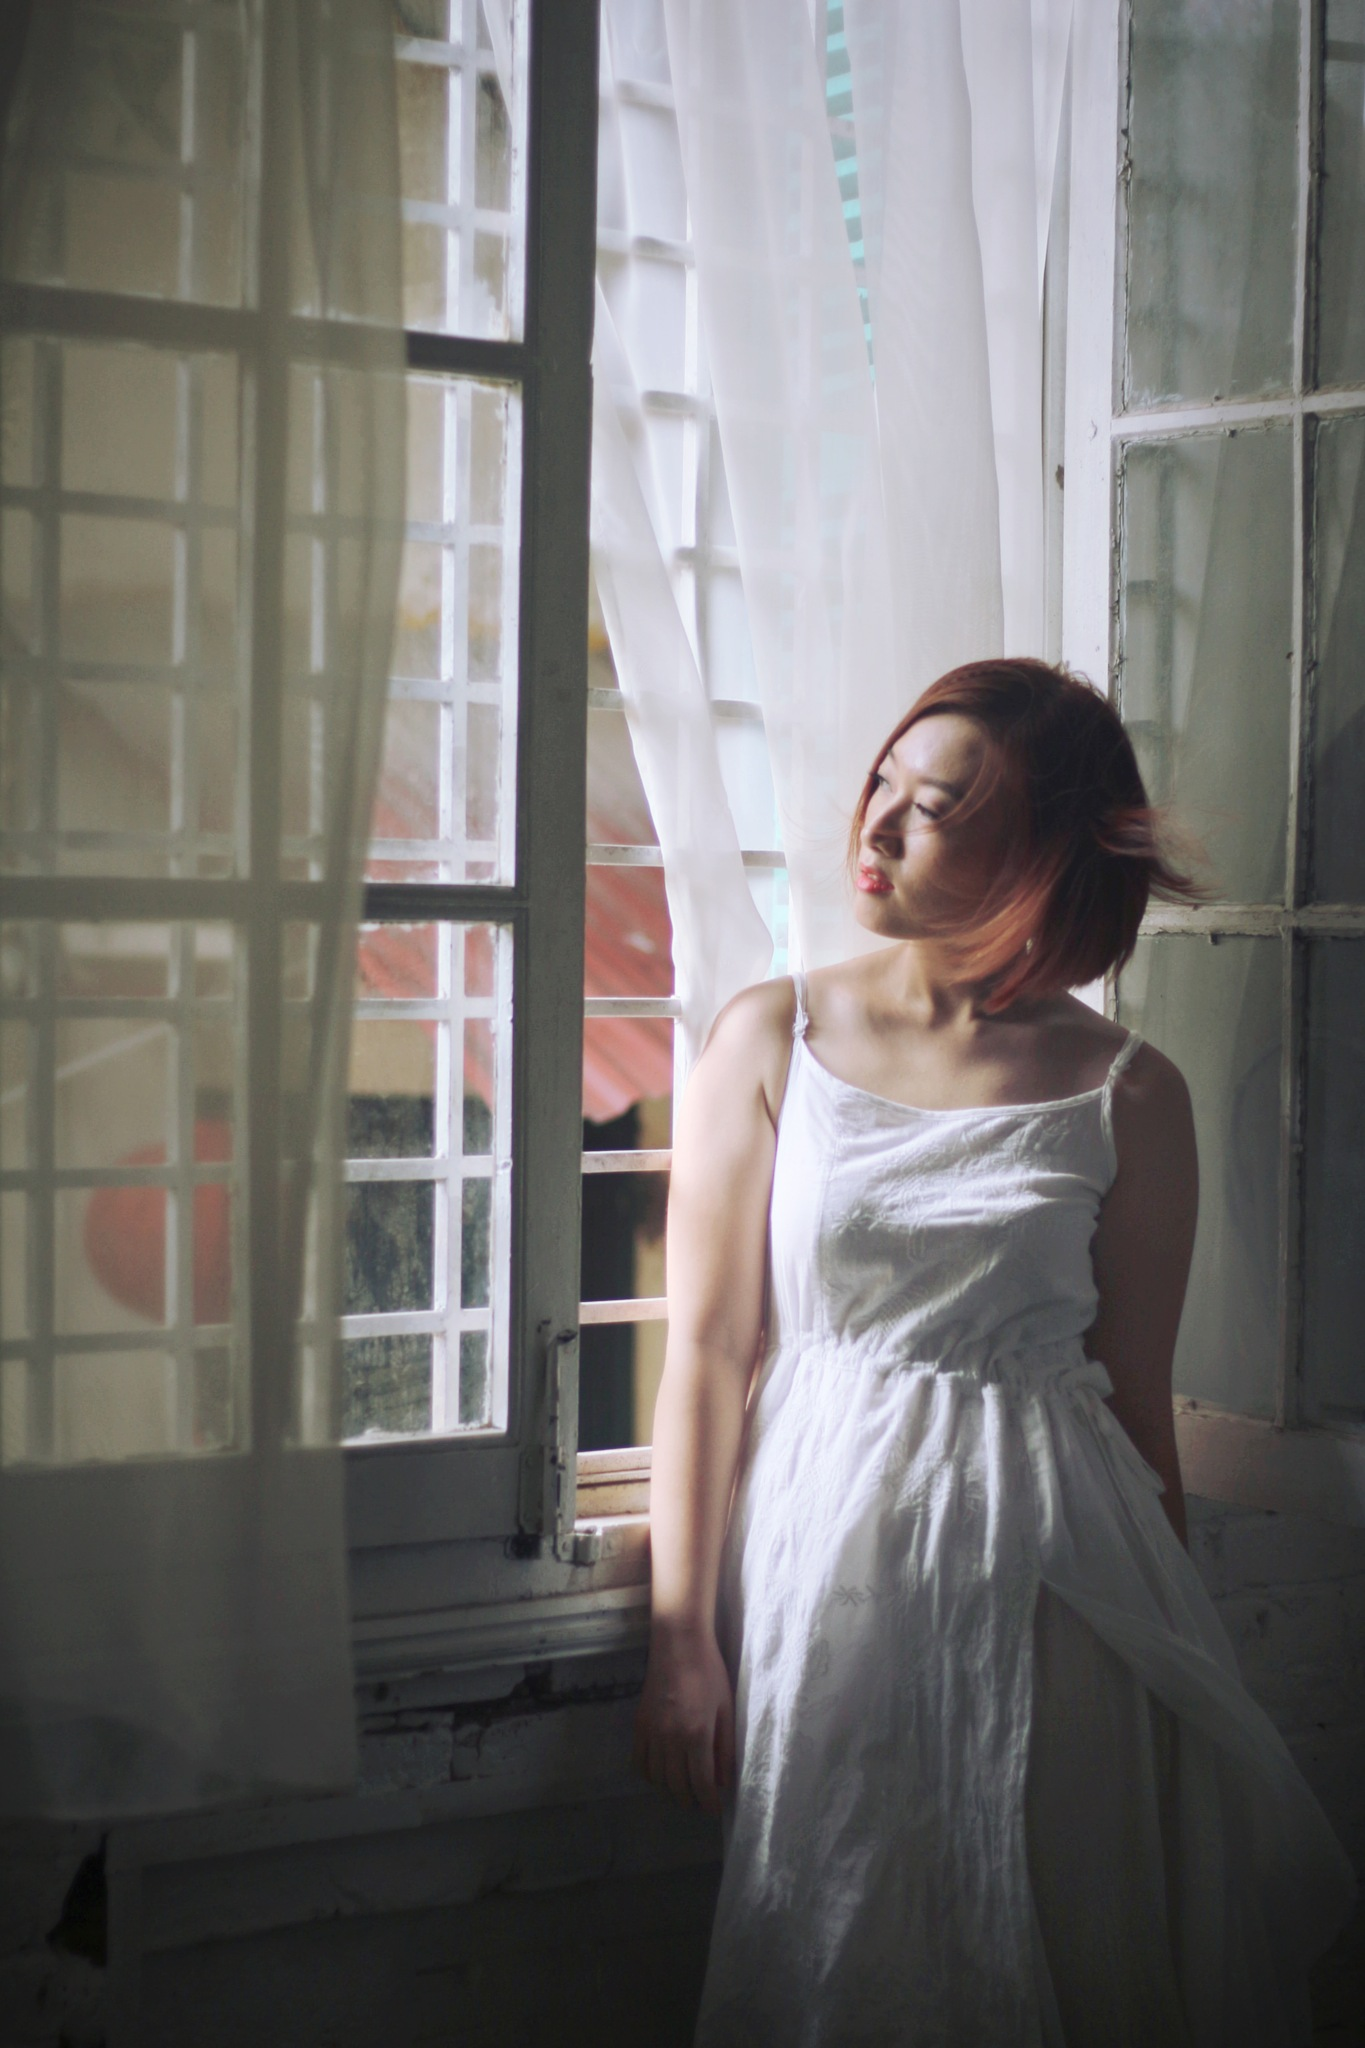 By The Window by Chai Thời Gian